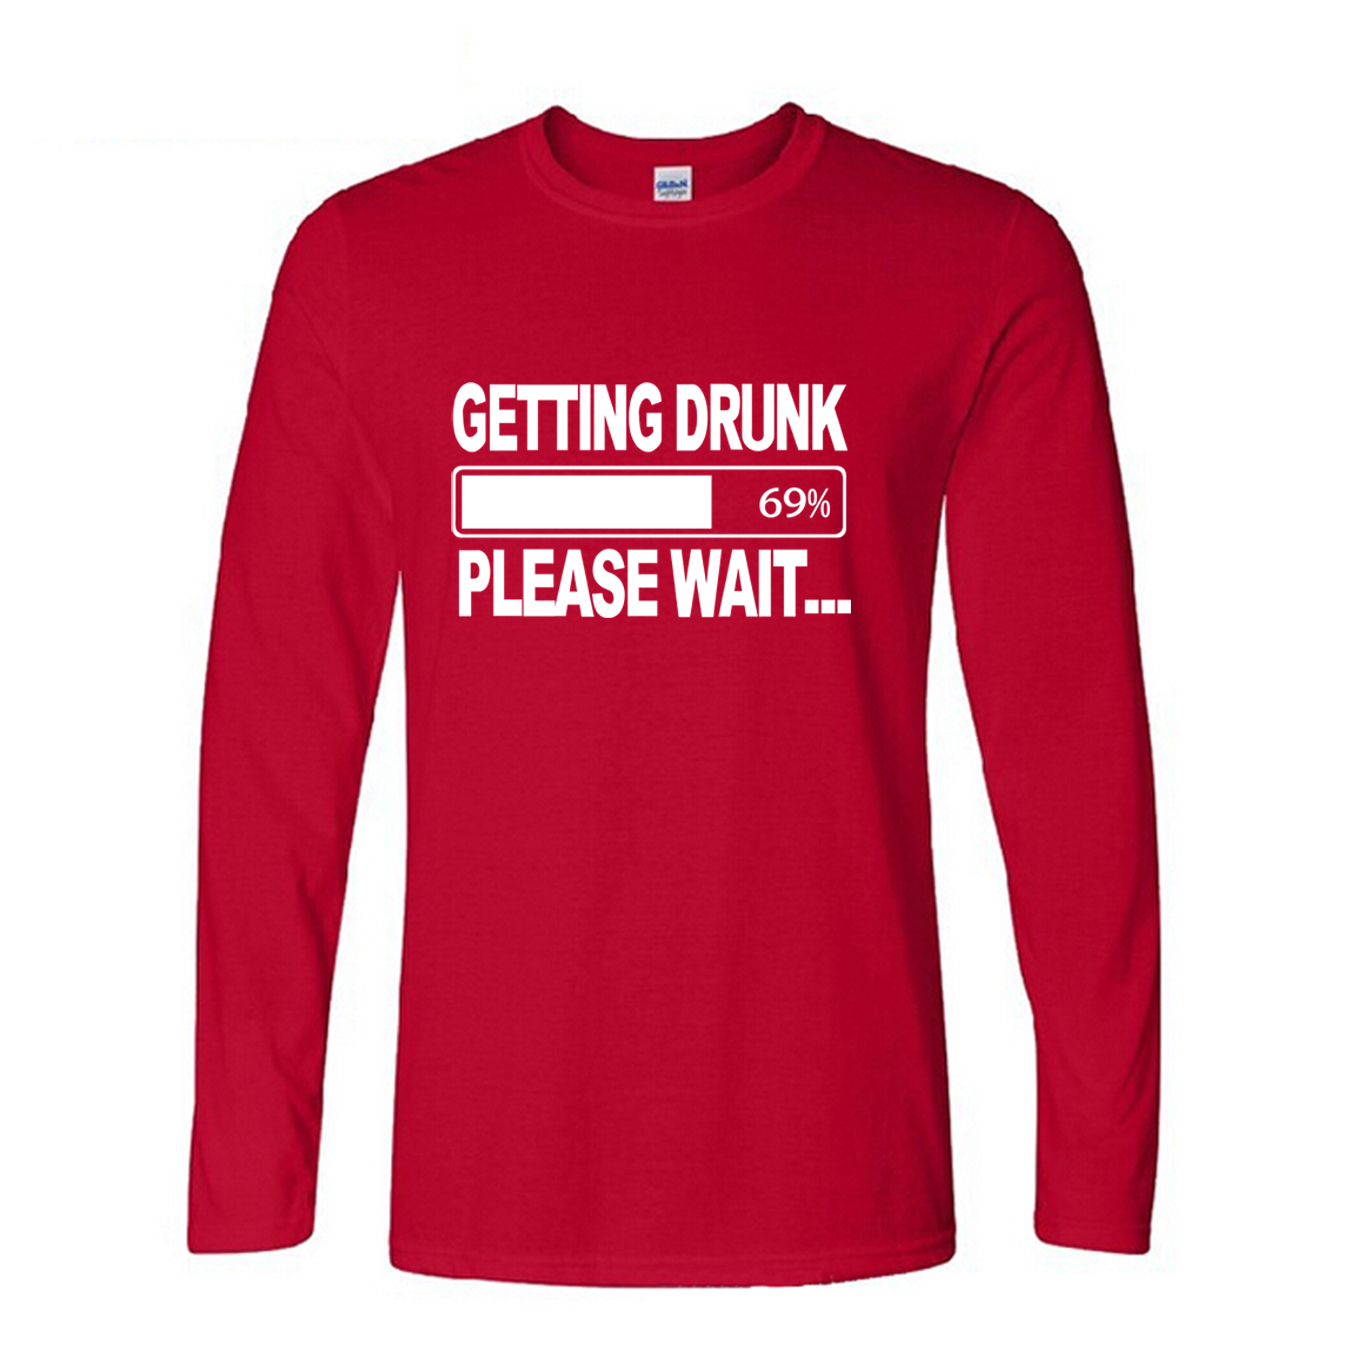 getting Drunk Beer Stag Party Gift Funny Mens T Shirt 2016 new fashion cotton tops tee shirts men brand long sleeve men t shirts с длинным рукавом